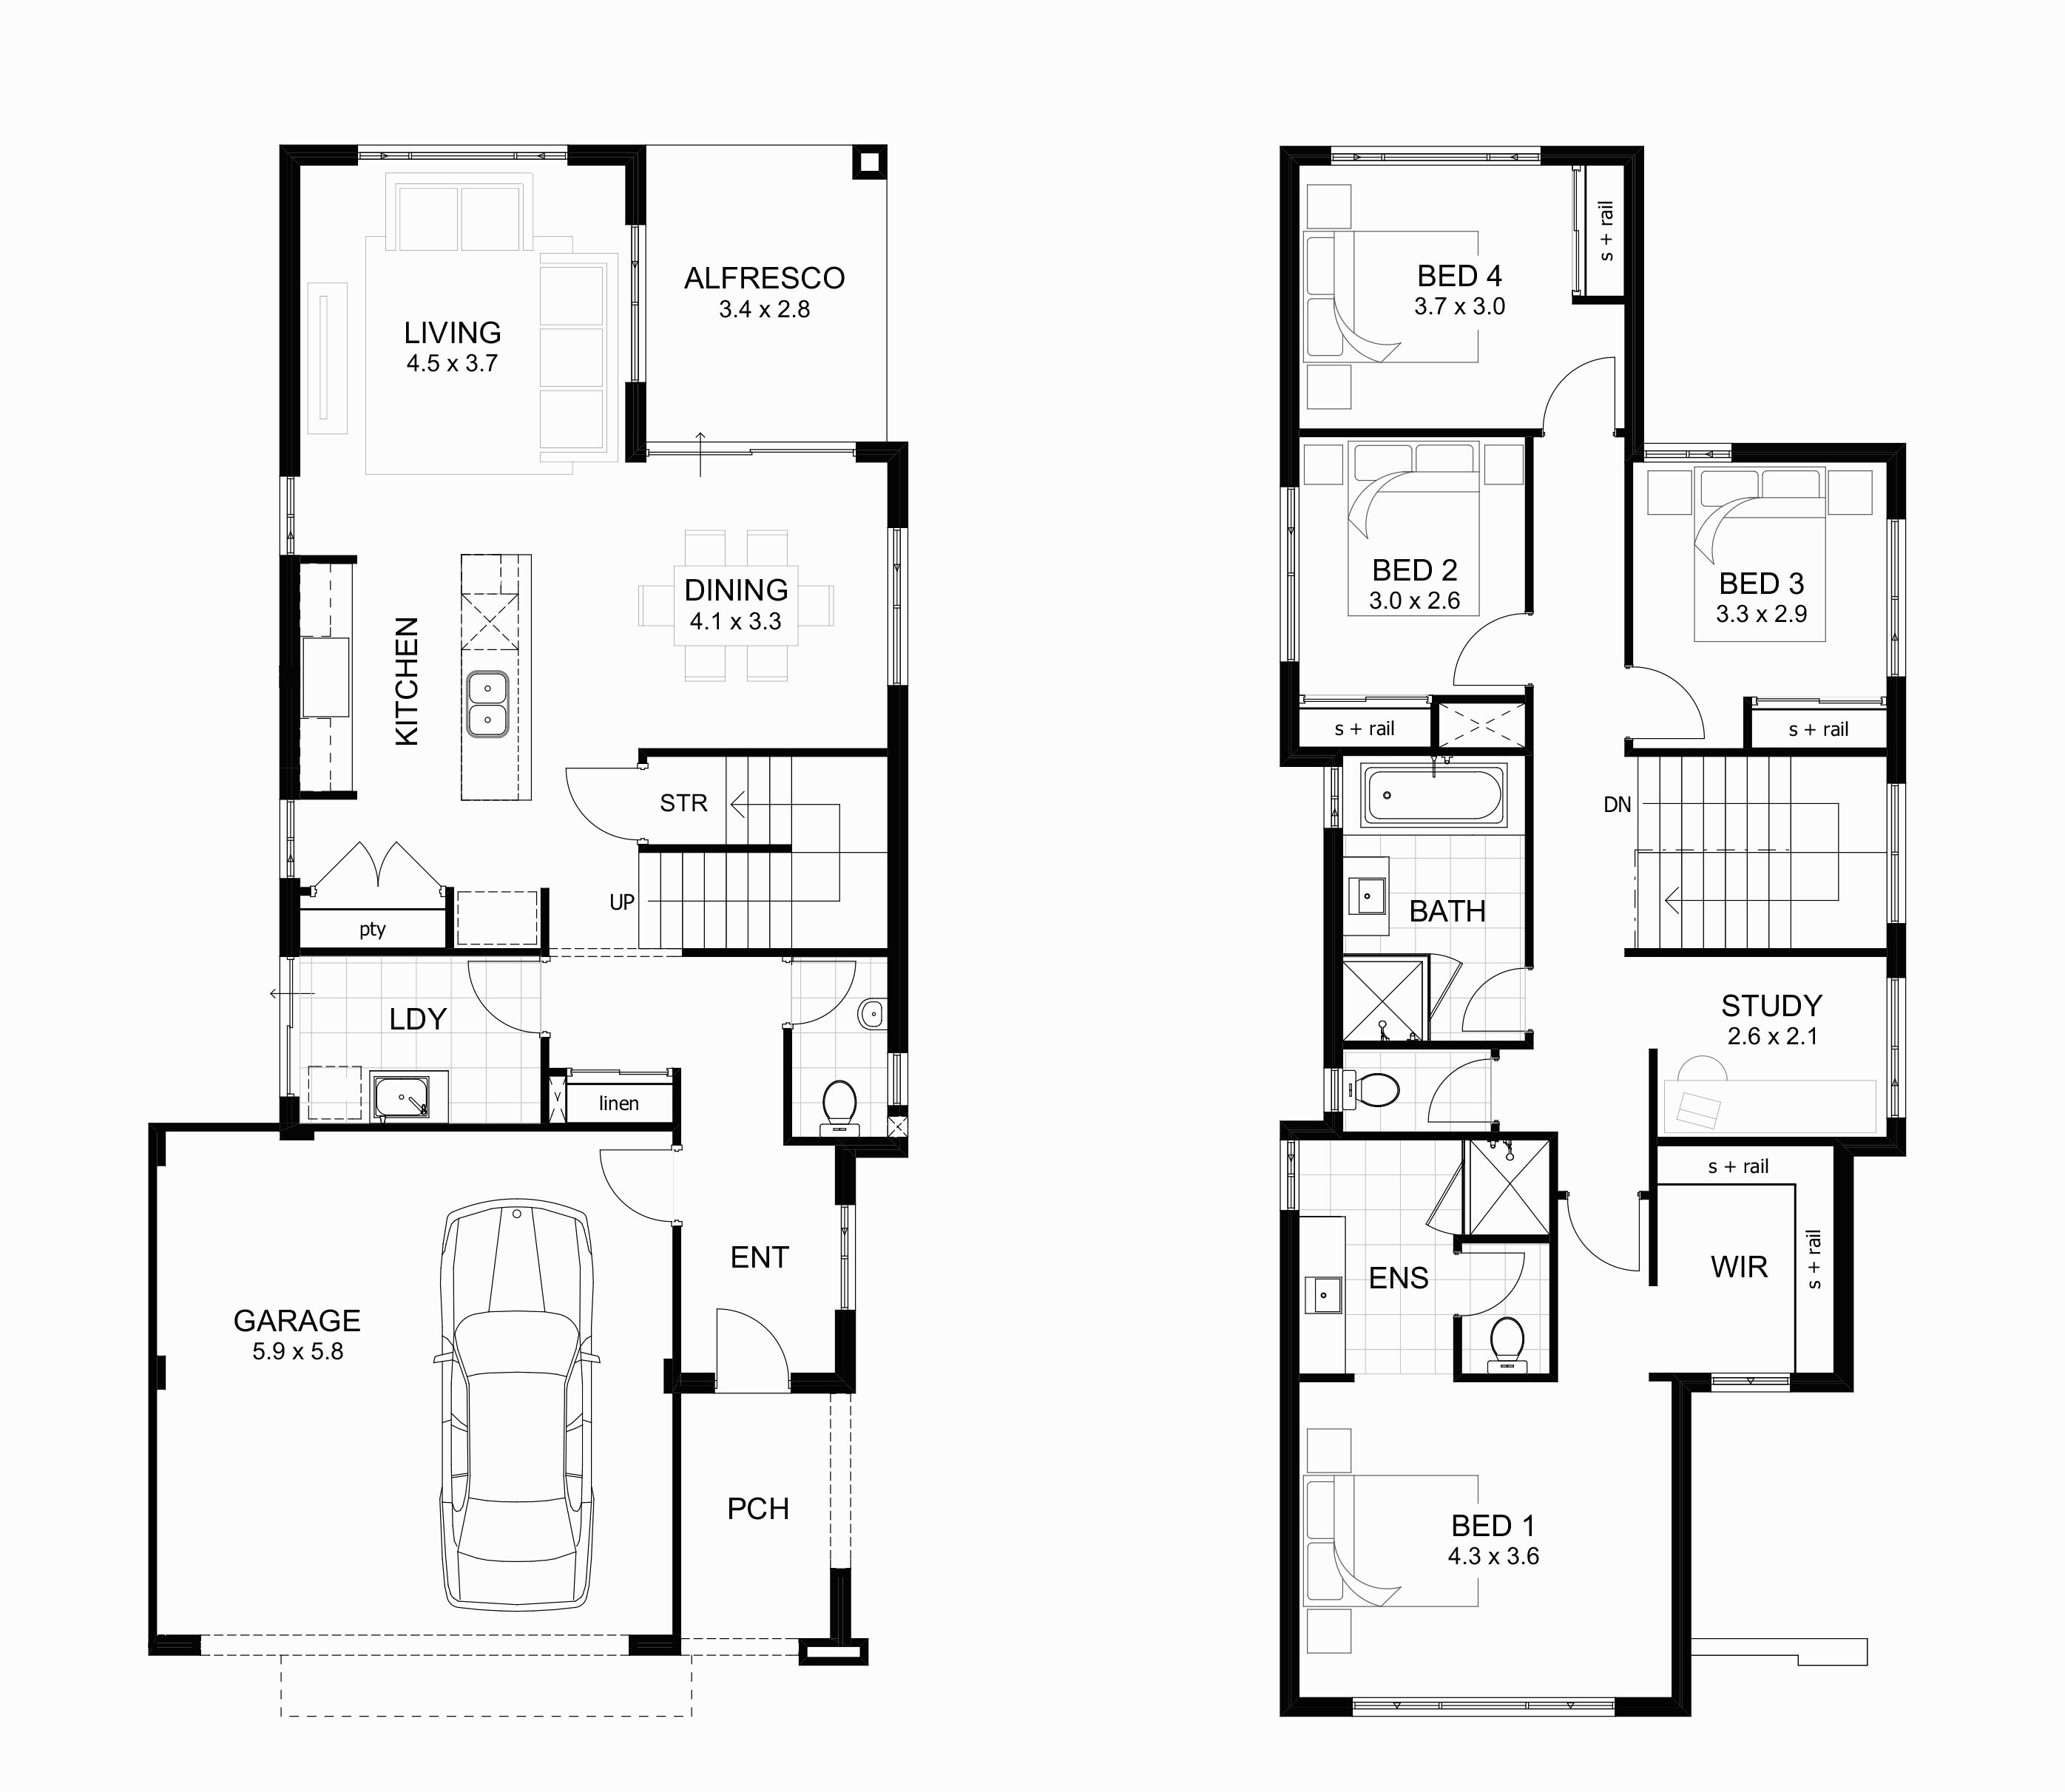 Floor Plans With Basement Modern Two Bedroom House Plans Double Storey House Plans 4 Bedroom House Plans Double Story House